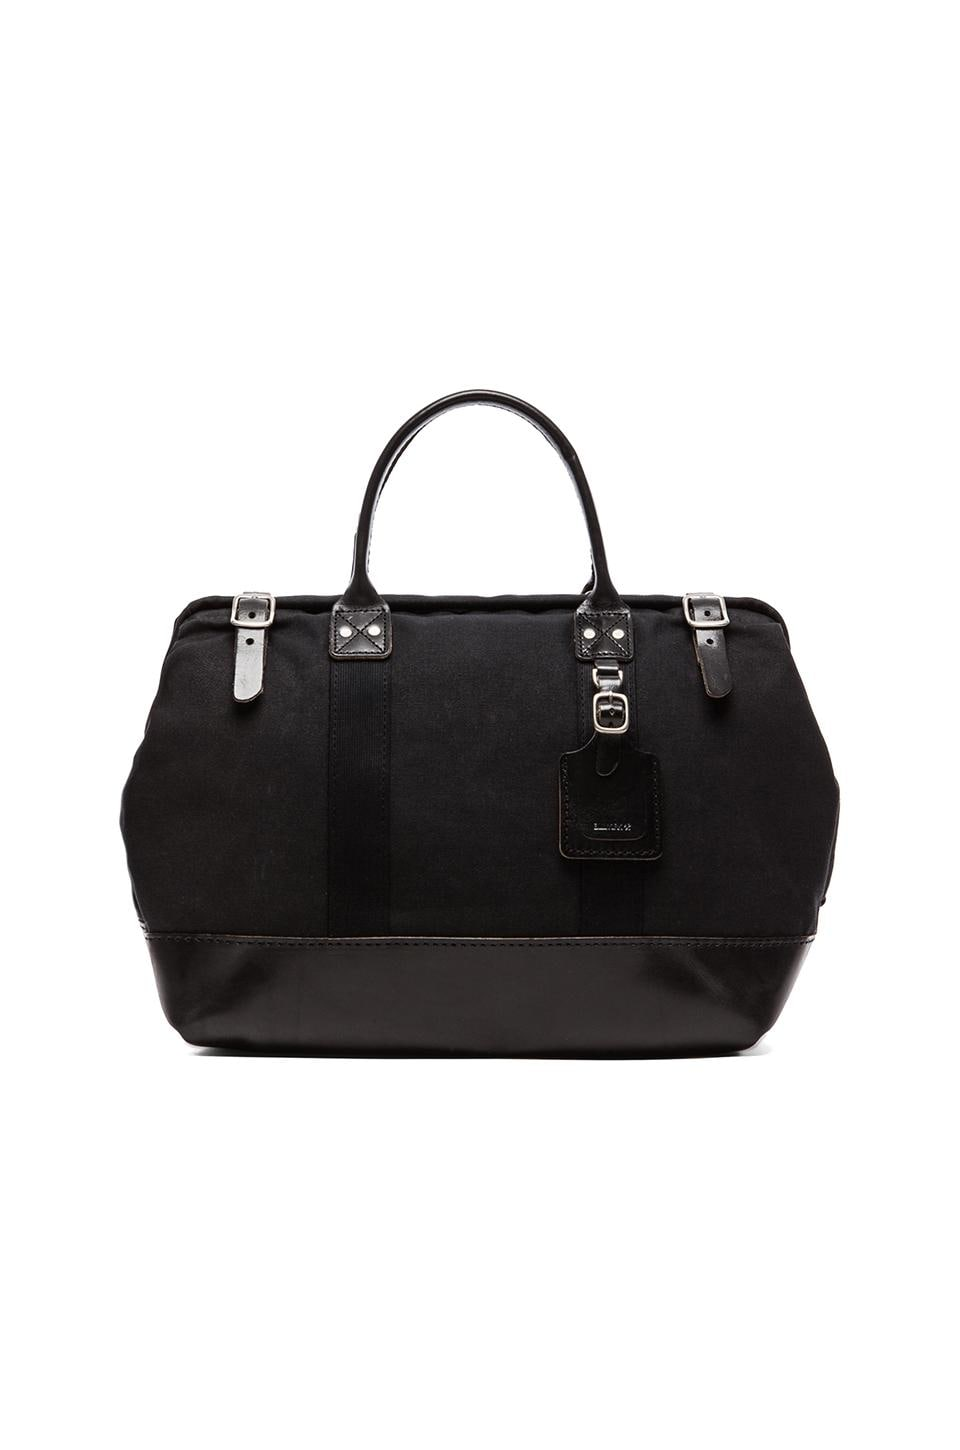 Billykirk Medium Carryall in Black Wax Cotton